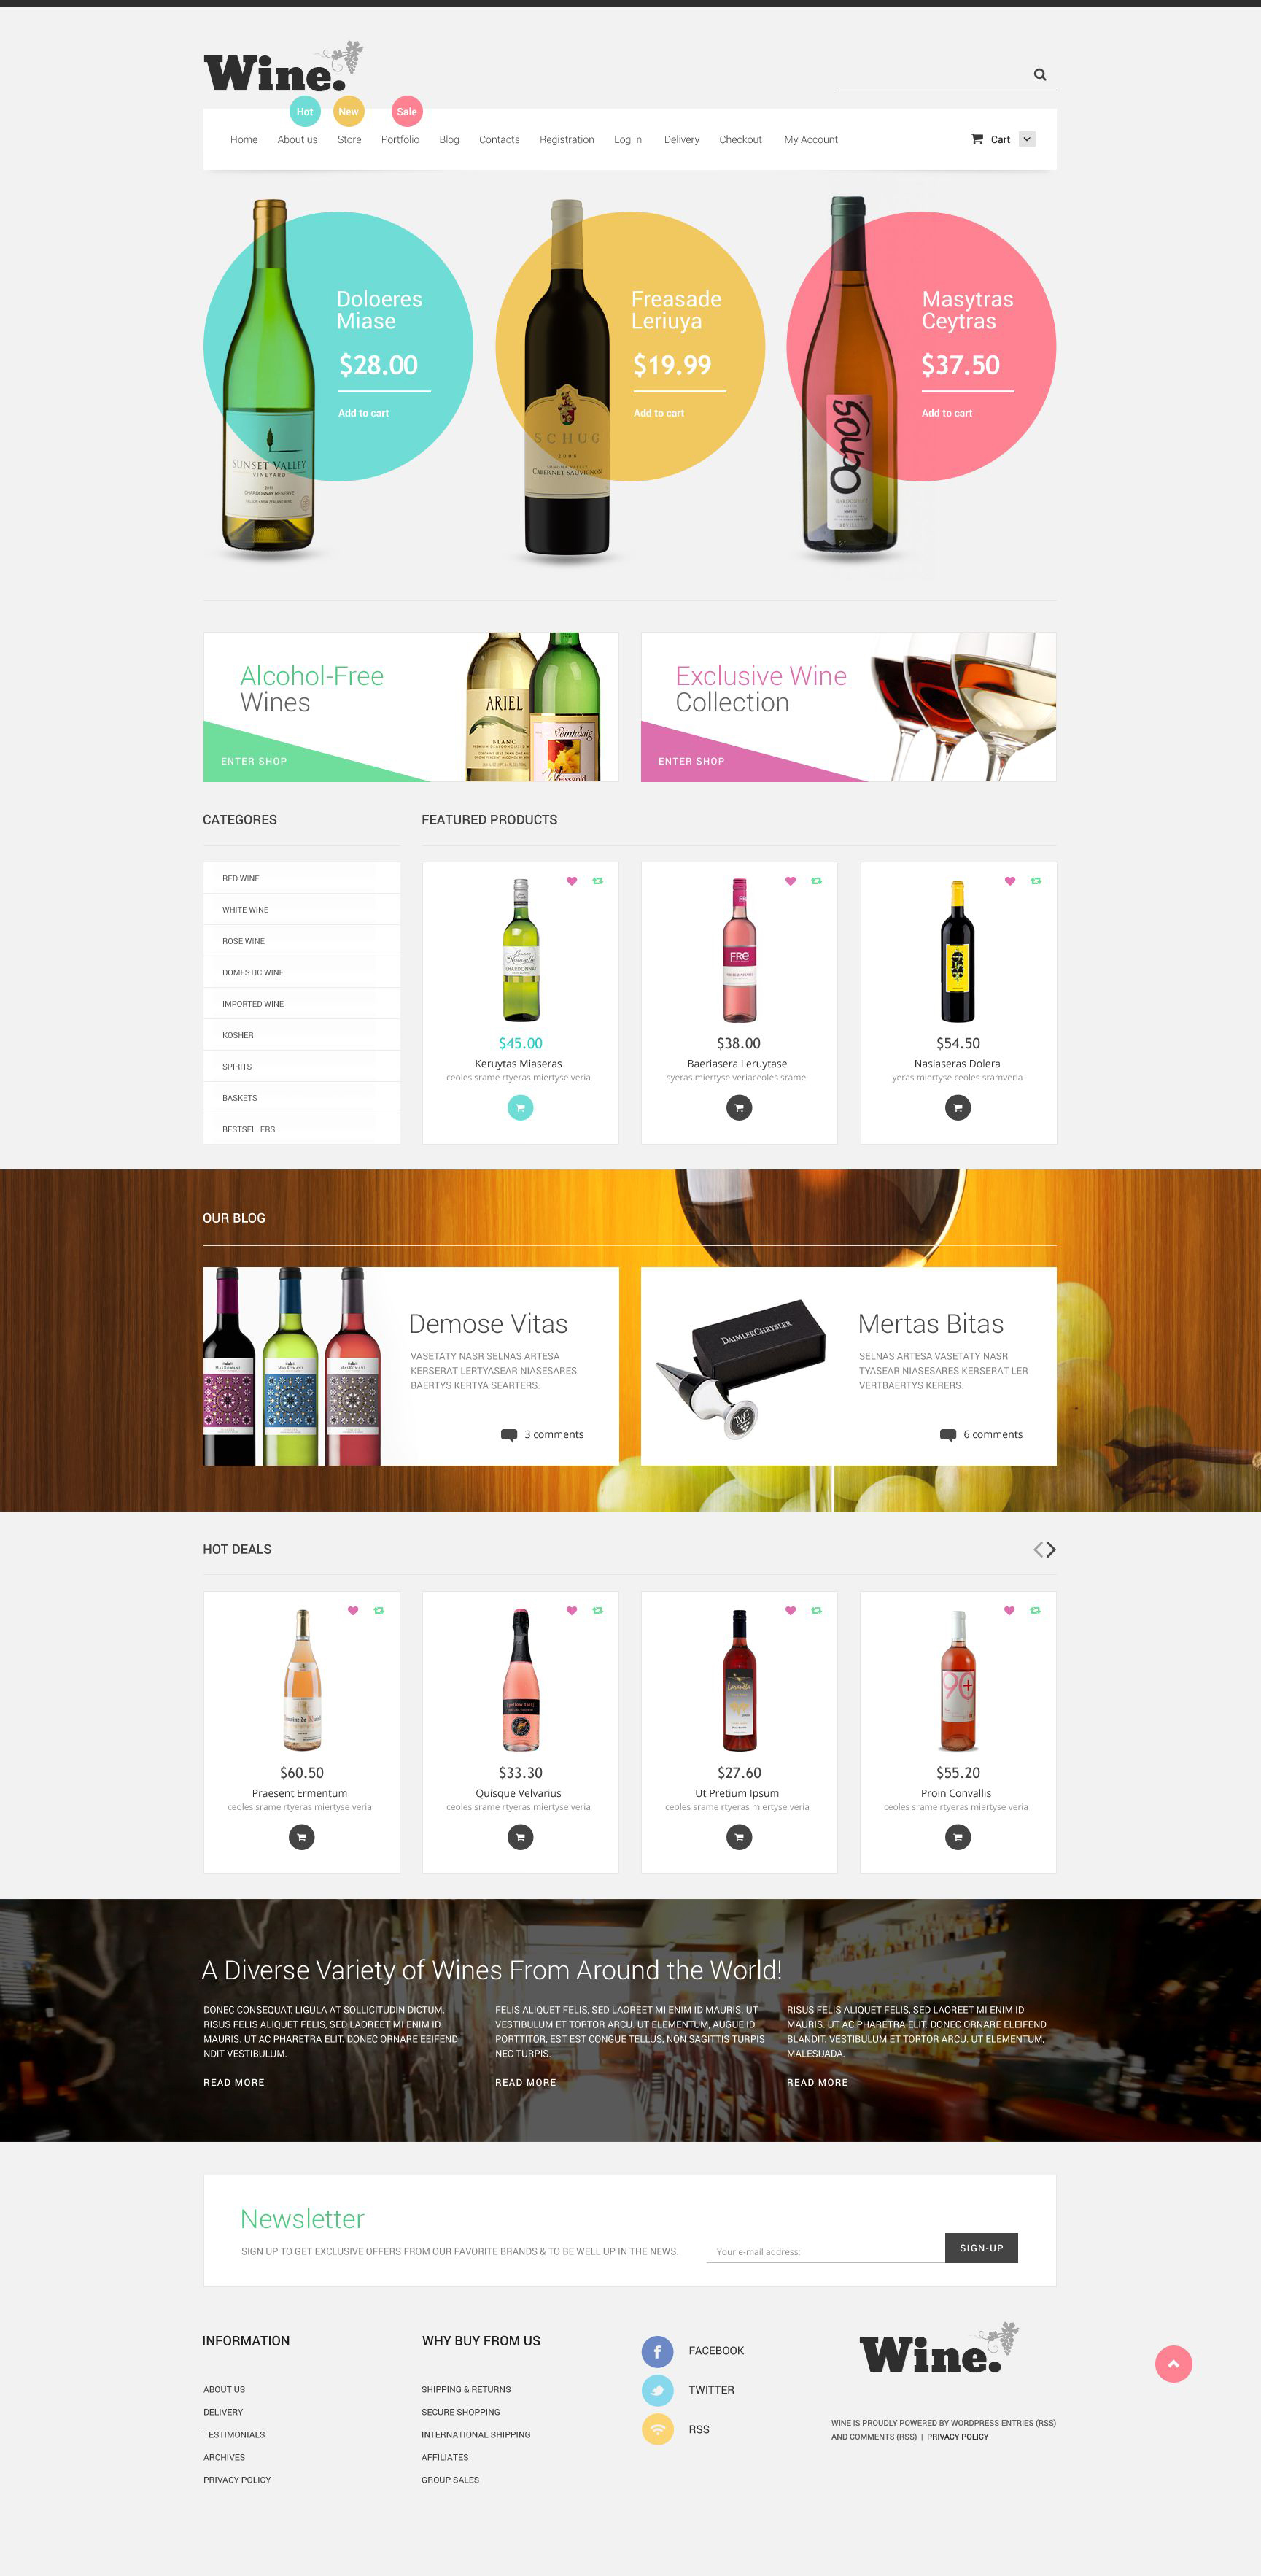 The Wine Store WooCommerce Design 53096, one of the best WooCommerce themes of its kind (cafe and restaurant, most popular), also known as wine store WooCommerce template, production WooCommerce template, grape WooCommerce template, collection WooCommerce template, red WooCommerce template, white rose WooCommerce template, bubbly WooCommerce template, kosher WooCommerce template, Champagne dry WooCommerce template, traditions WooCommerce template, cabernet WooCommerce template, sauvignon WooCommerce template, chardonnay WooCommerce template, Muscat Pinot Noir bottles WooCommerce template, cork WooCommerce template, Bordeaux Bourgogne glass WooCommerce template, taste restaurant WooCommerce template, alcohol WooCommerce template, bottle WooCommerce template, celebration WooCommerce template, barrels and related with wine store, production, grape, collection, red, white rose, bubbly, kosher, Champagne dry, traditions, cabernet, sauvignon, chardonnay, Muscat Pinot Noir bottles, cork, Bordeaux Bourgogne glass, taste restaurant, alcohol, bottle, celebration, barrels, etc.